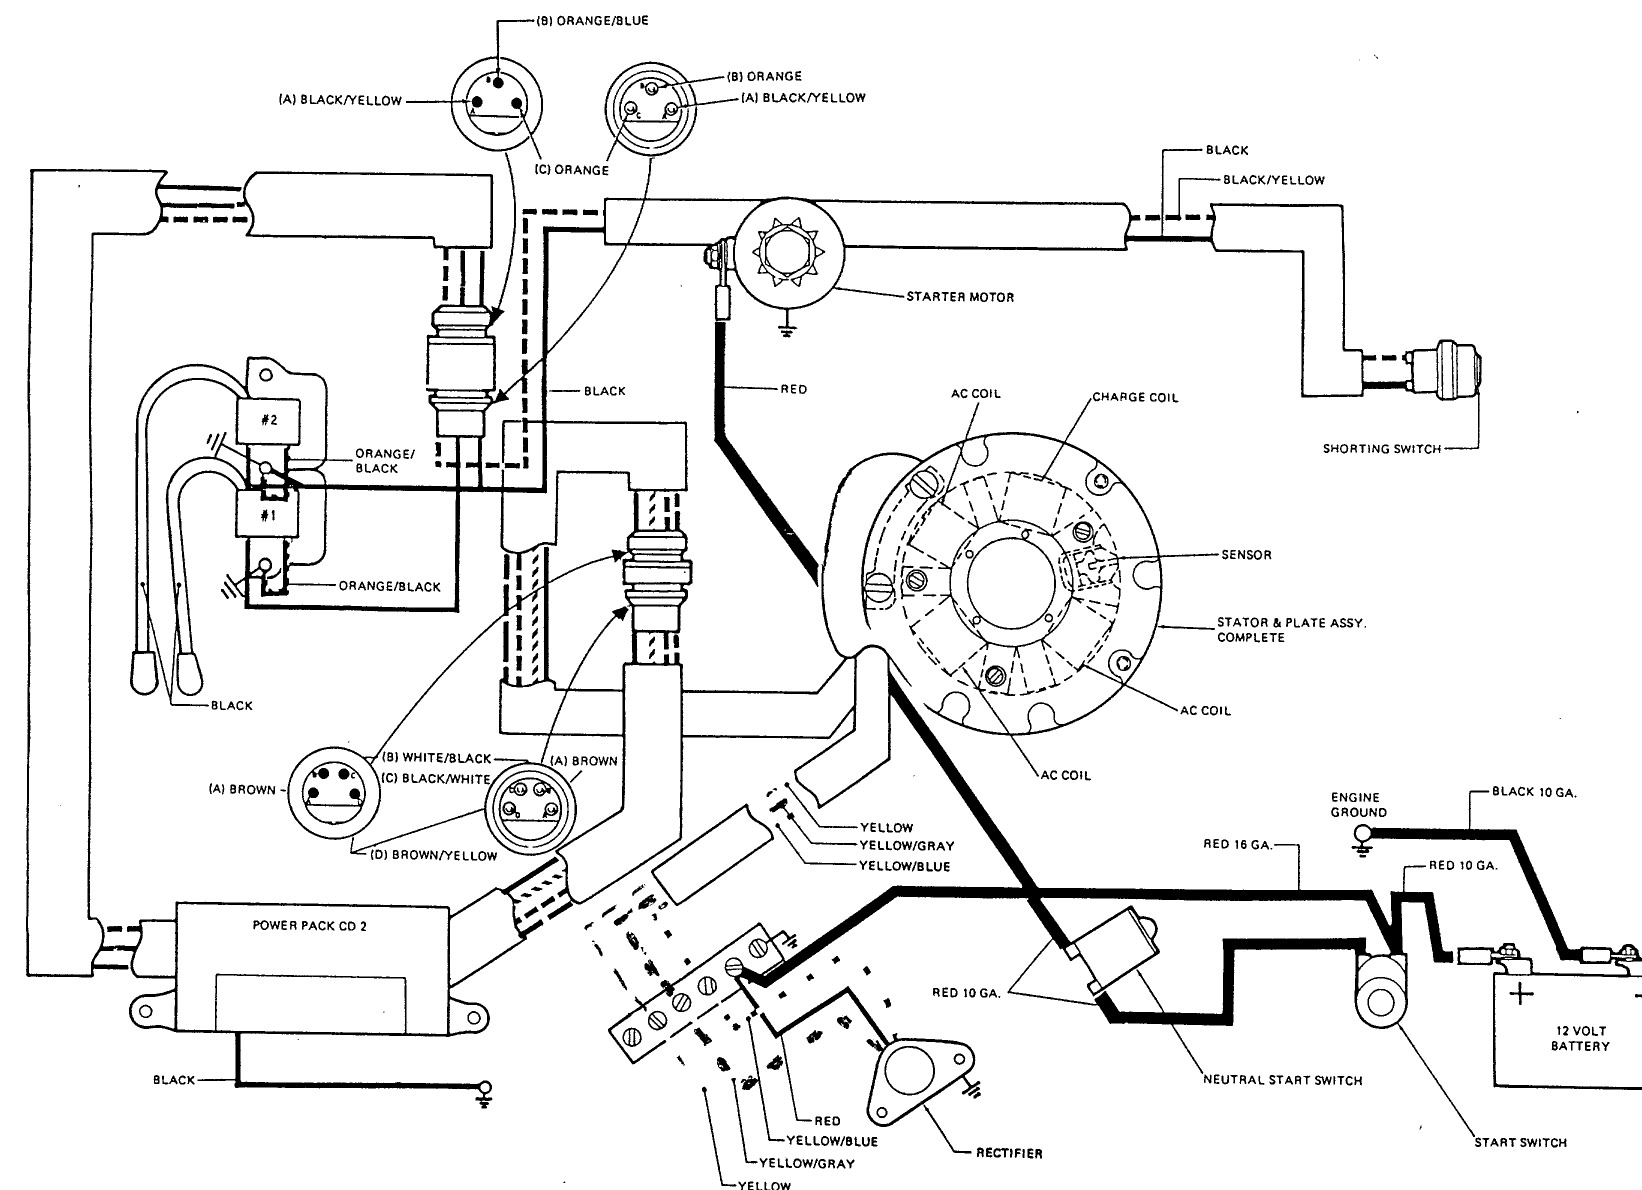 1973 Mercury Outboard Wiring Diagram 9 Guide And Troubleshooting Of Todays Rh 20 11 12 1813weddingbarn Com 2005 Evinrude 115 Hp Motor Diagrams